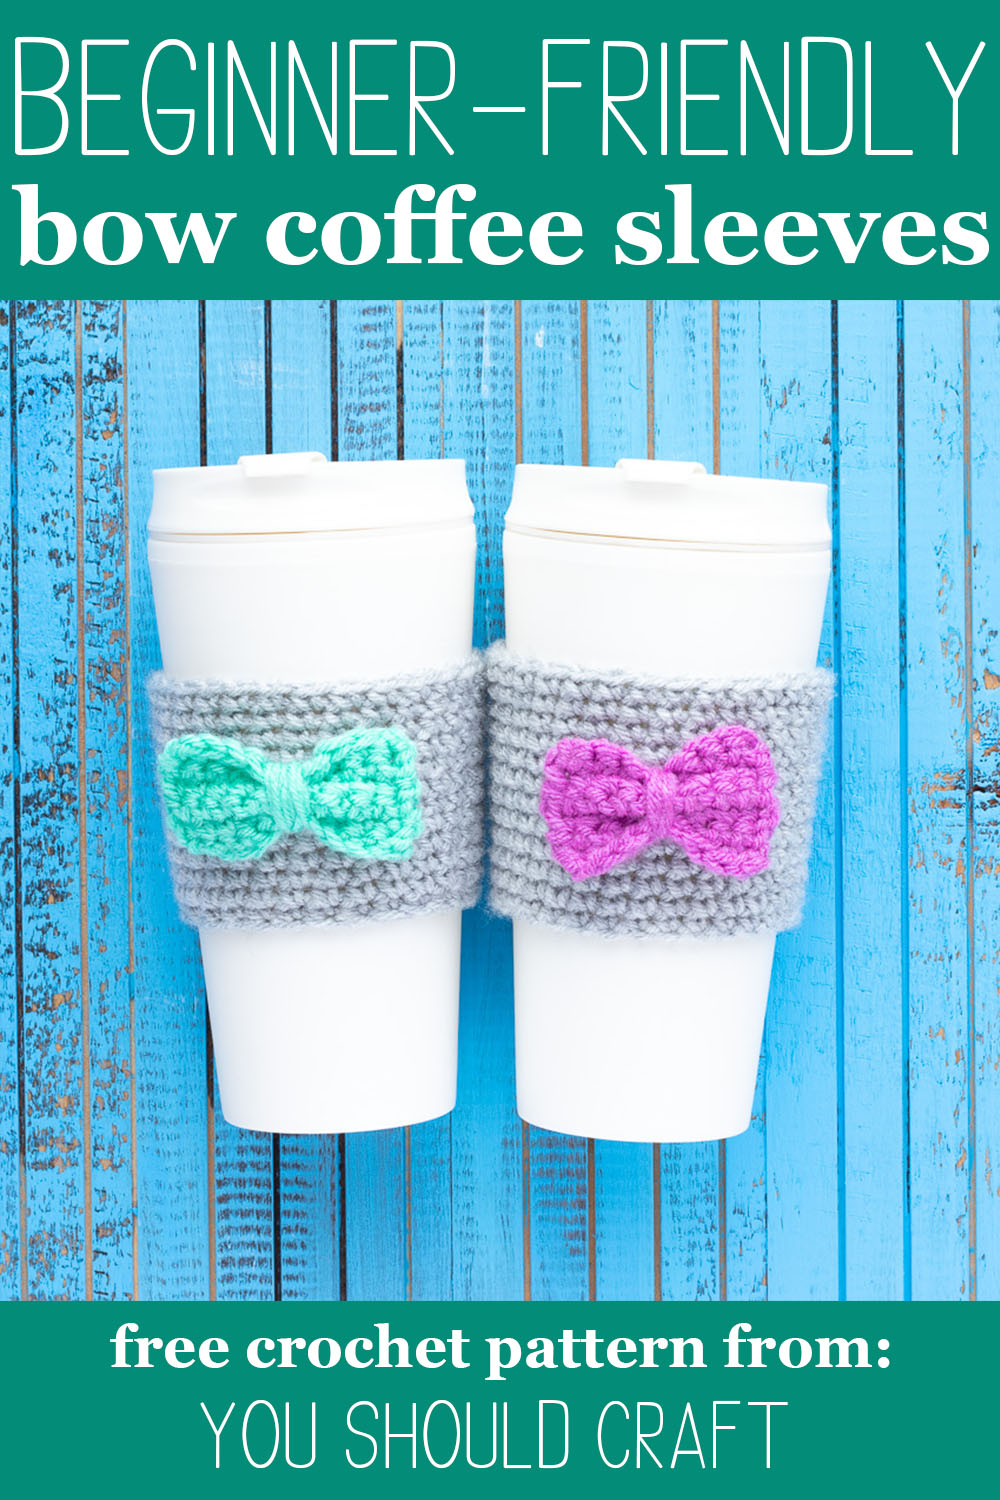 """two white cups with grey crocheted coffee sleeves, featuring small mint and purple bows. Text overlay says, """"beginner friendly bow coffee sleeves - free crochet pattern from you should craft"""""""